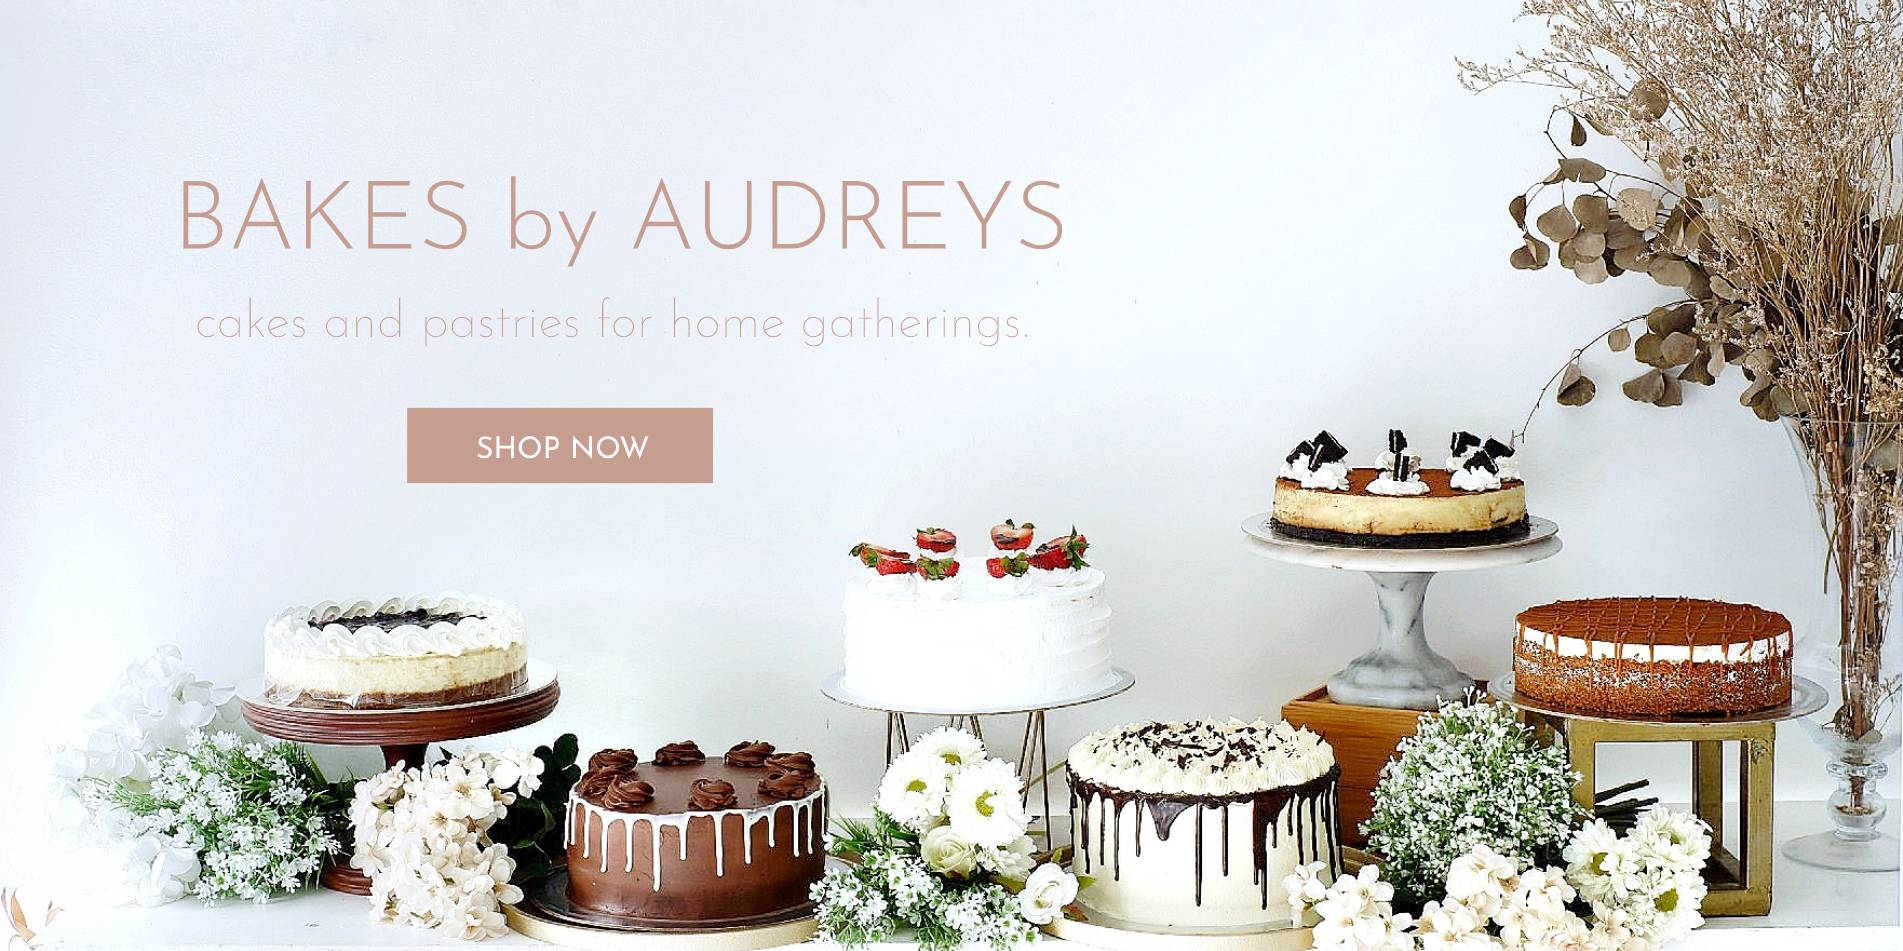 Bakes by Audreys